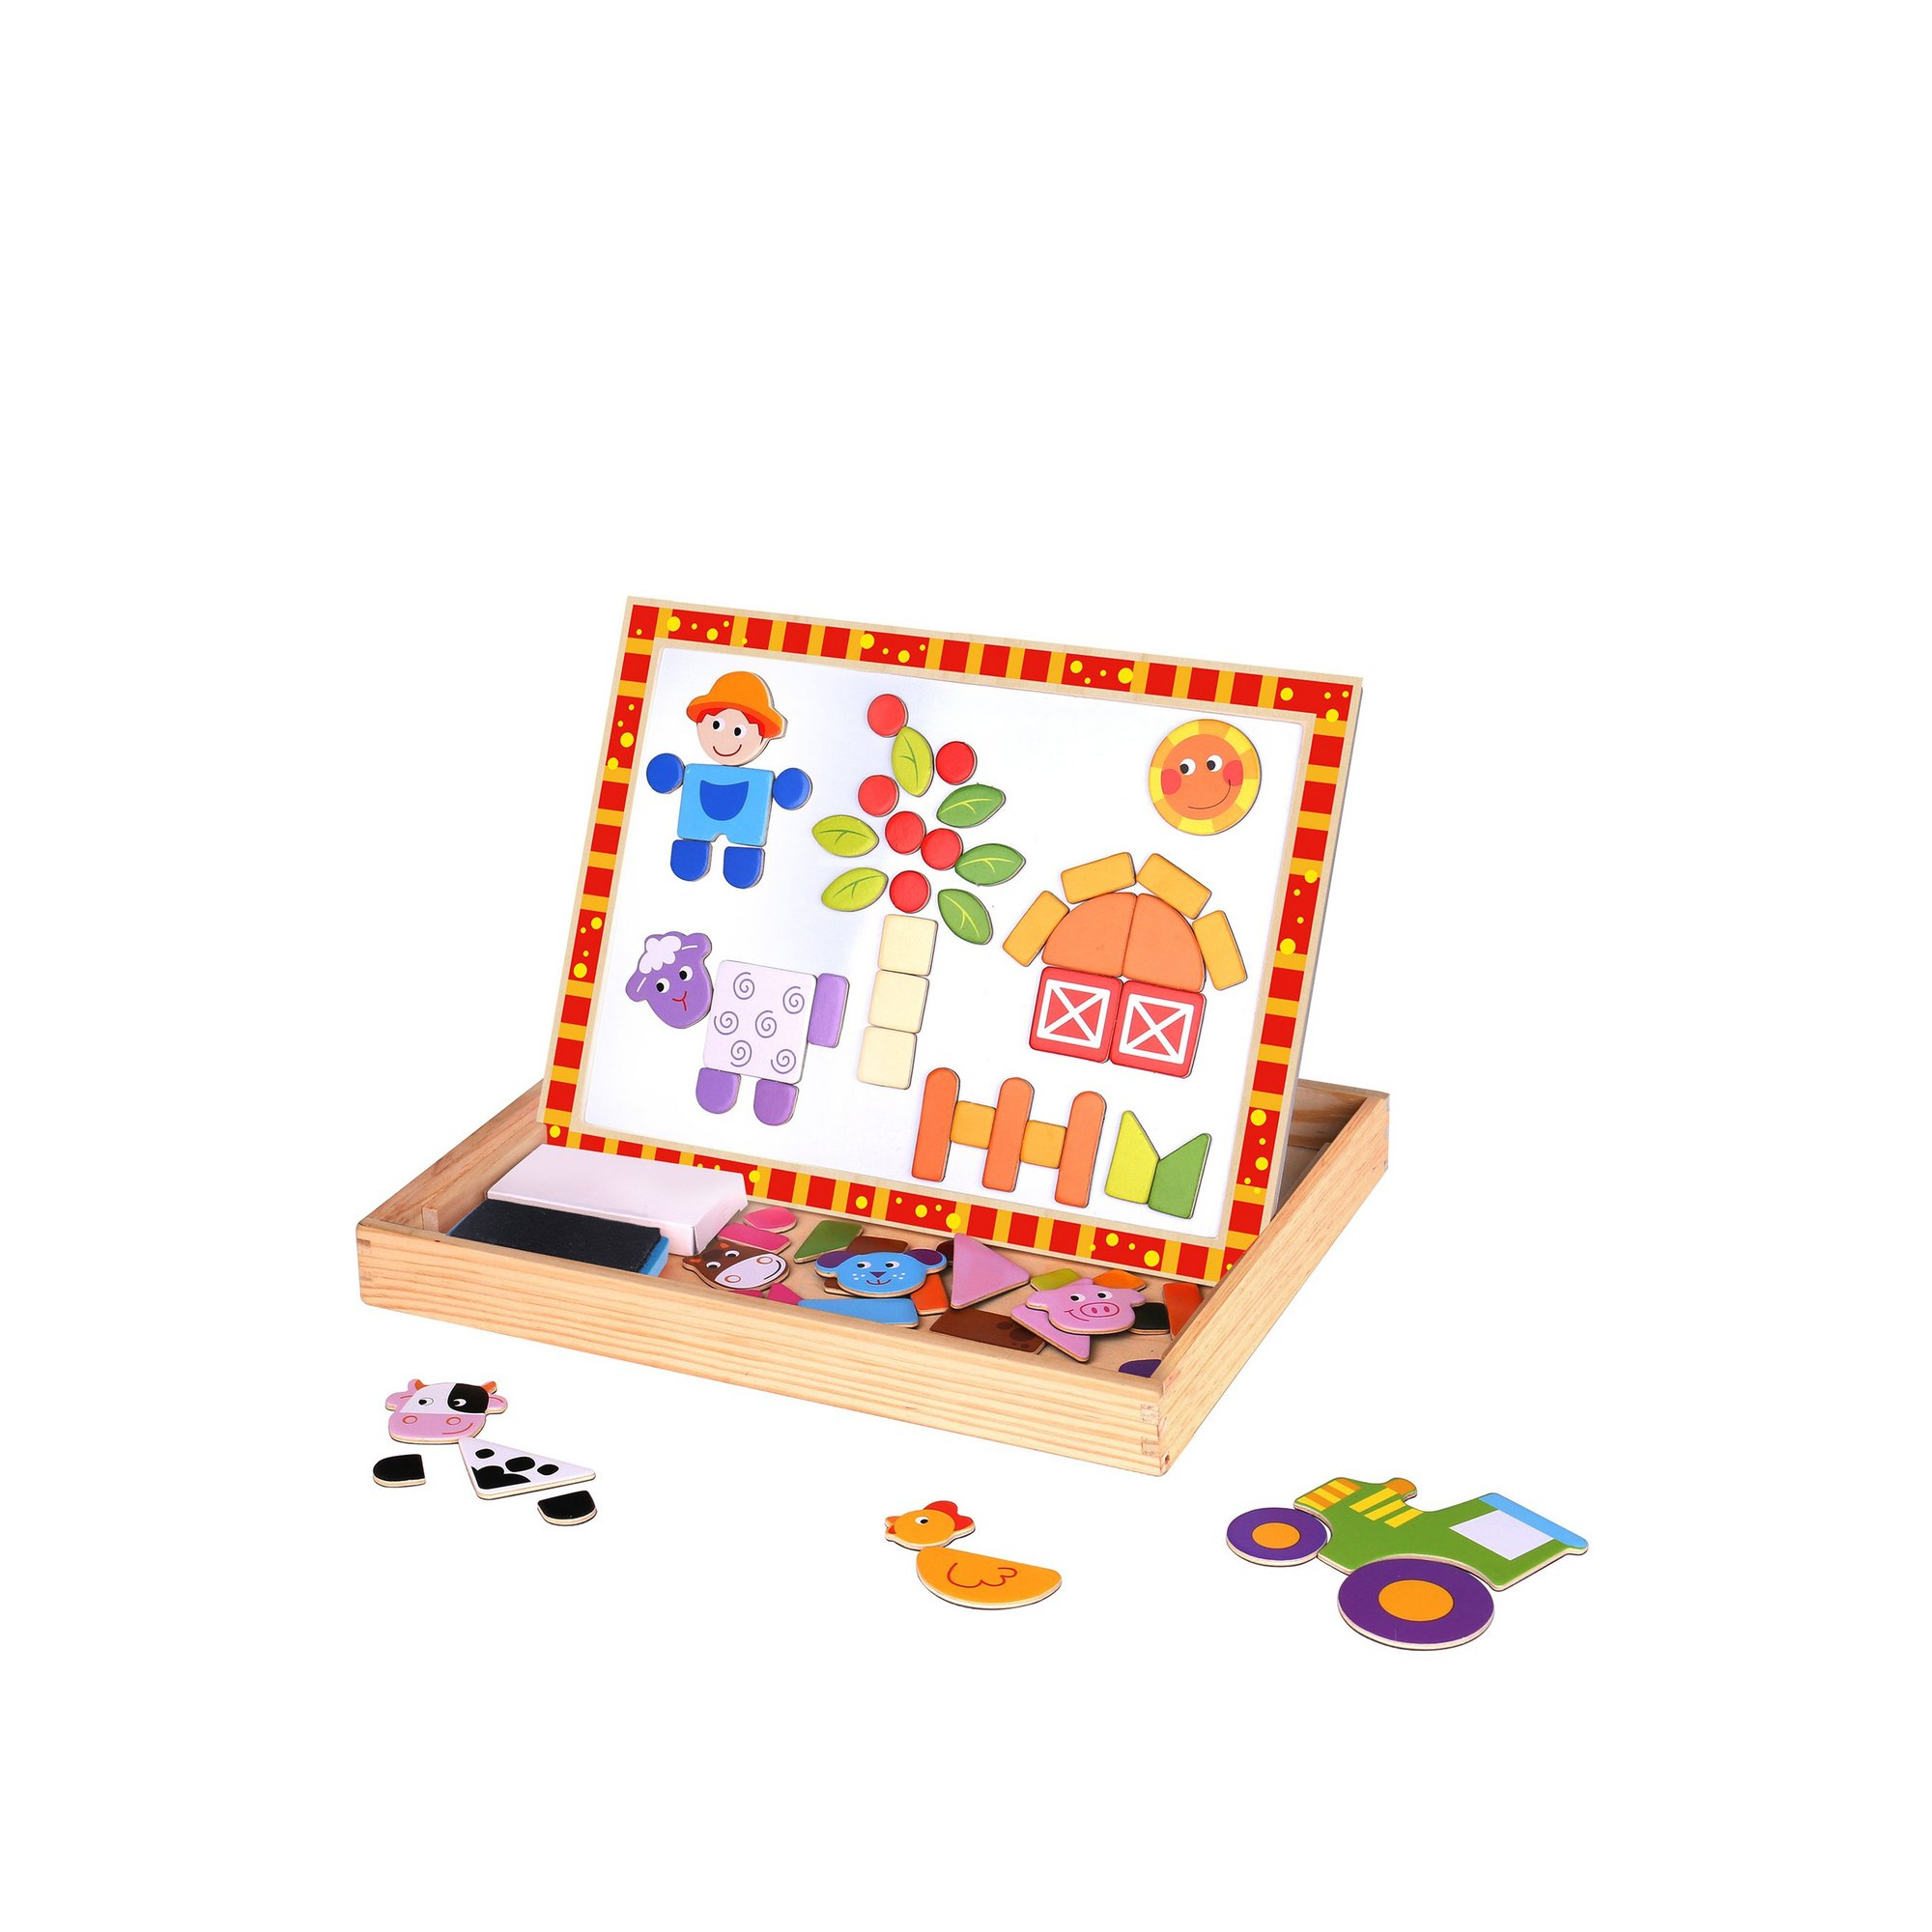 Image of Wooden Magnetic Double Sided Activity Board